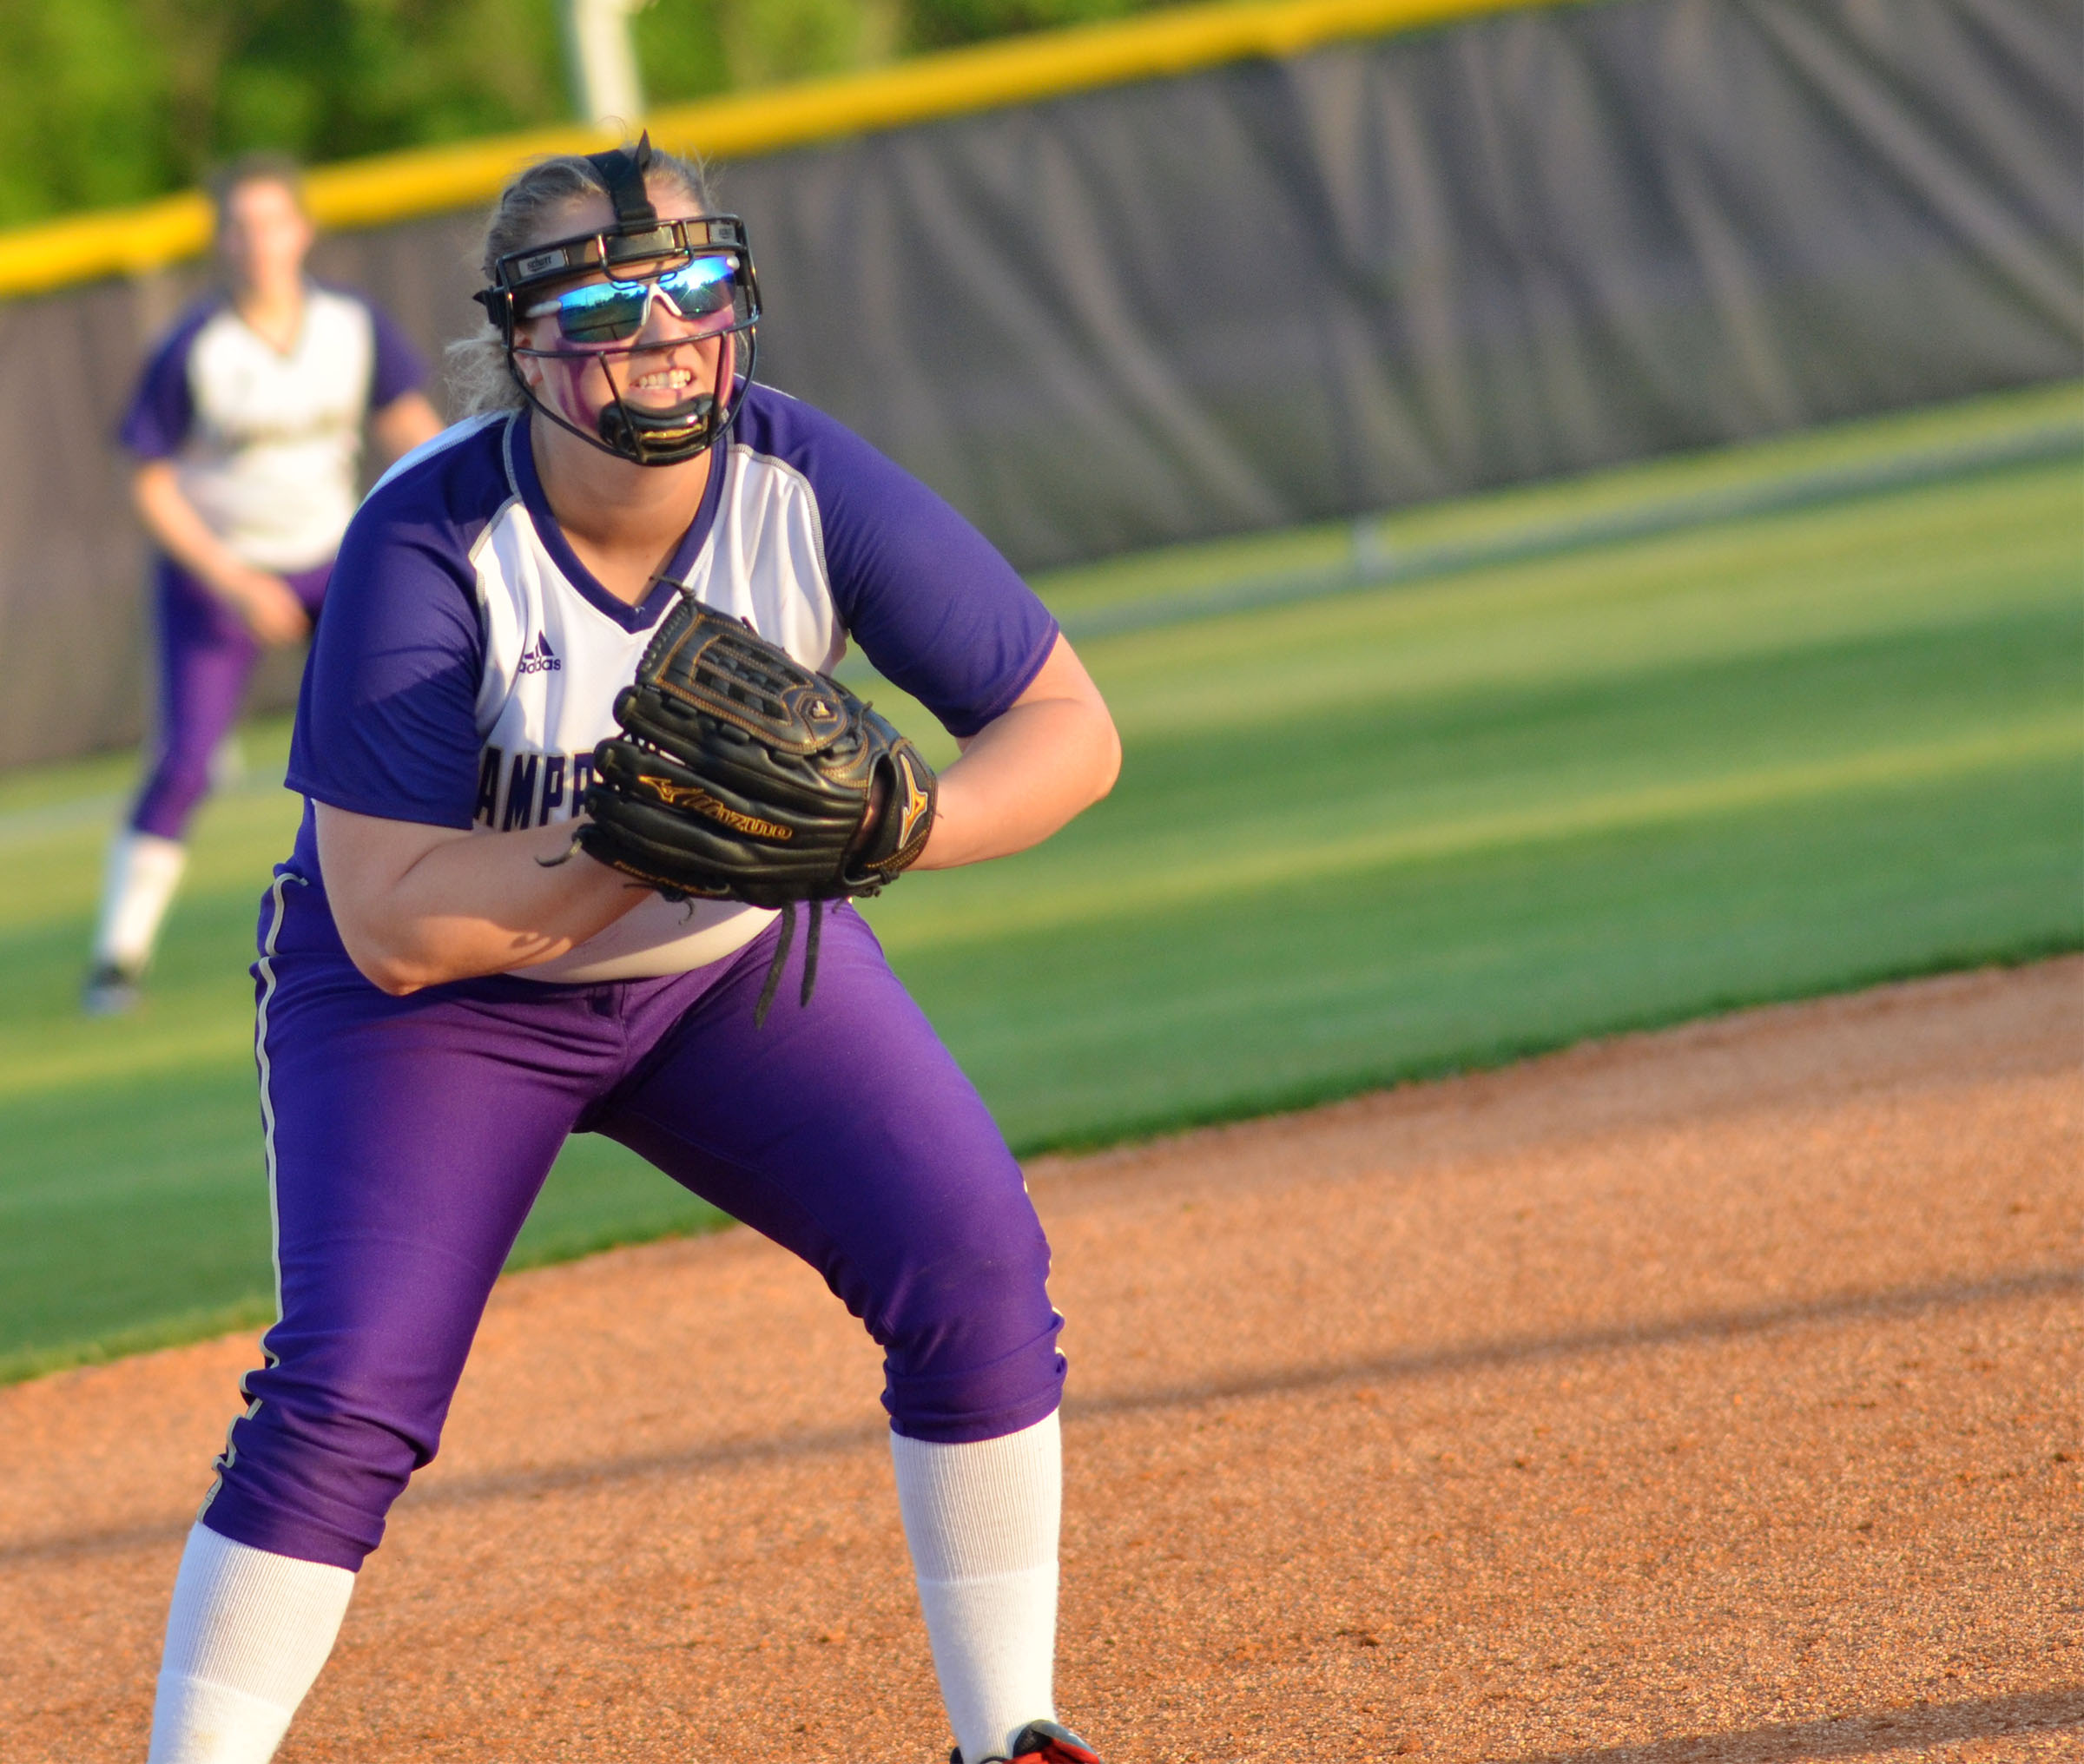 CHS senior Brenna Wethington was named to this year's coaches' all fifth region season team. She was the starting third baseman for the CHS team this season.